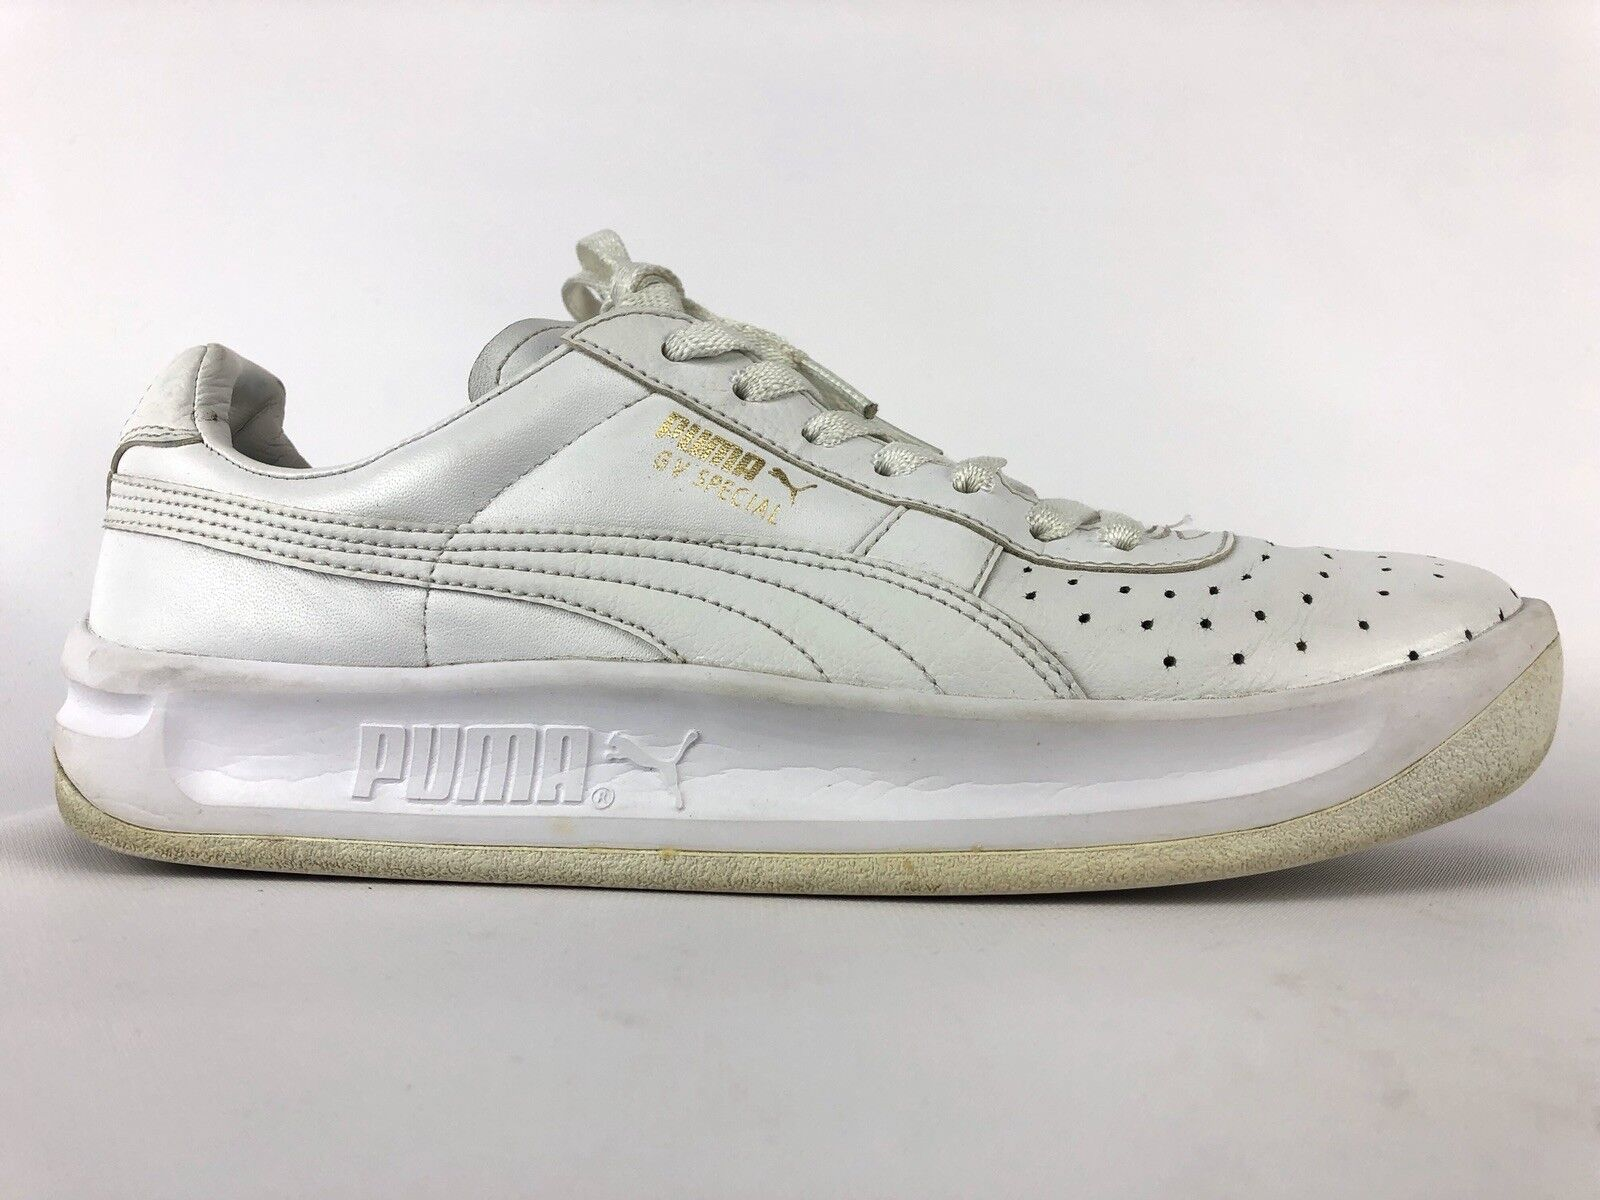 Puma Men's White Leather GV Special Lace-up Sneaker Size 8.5